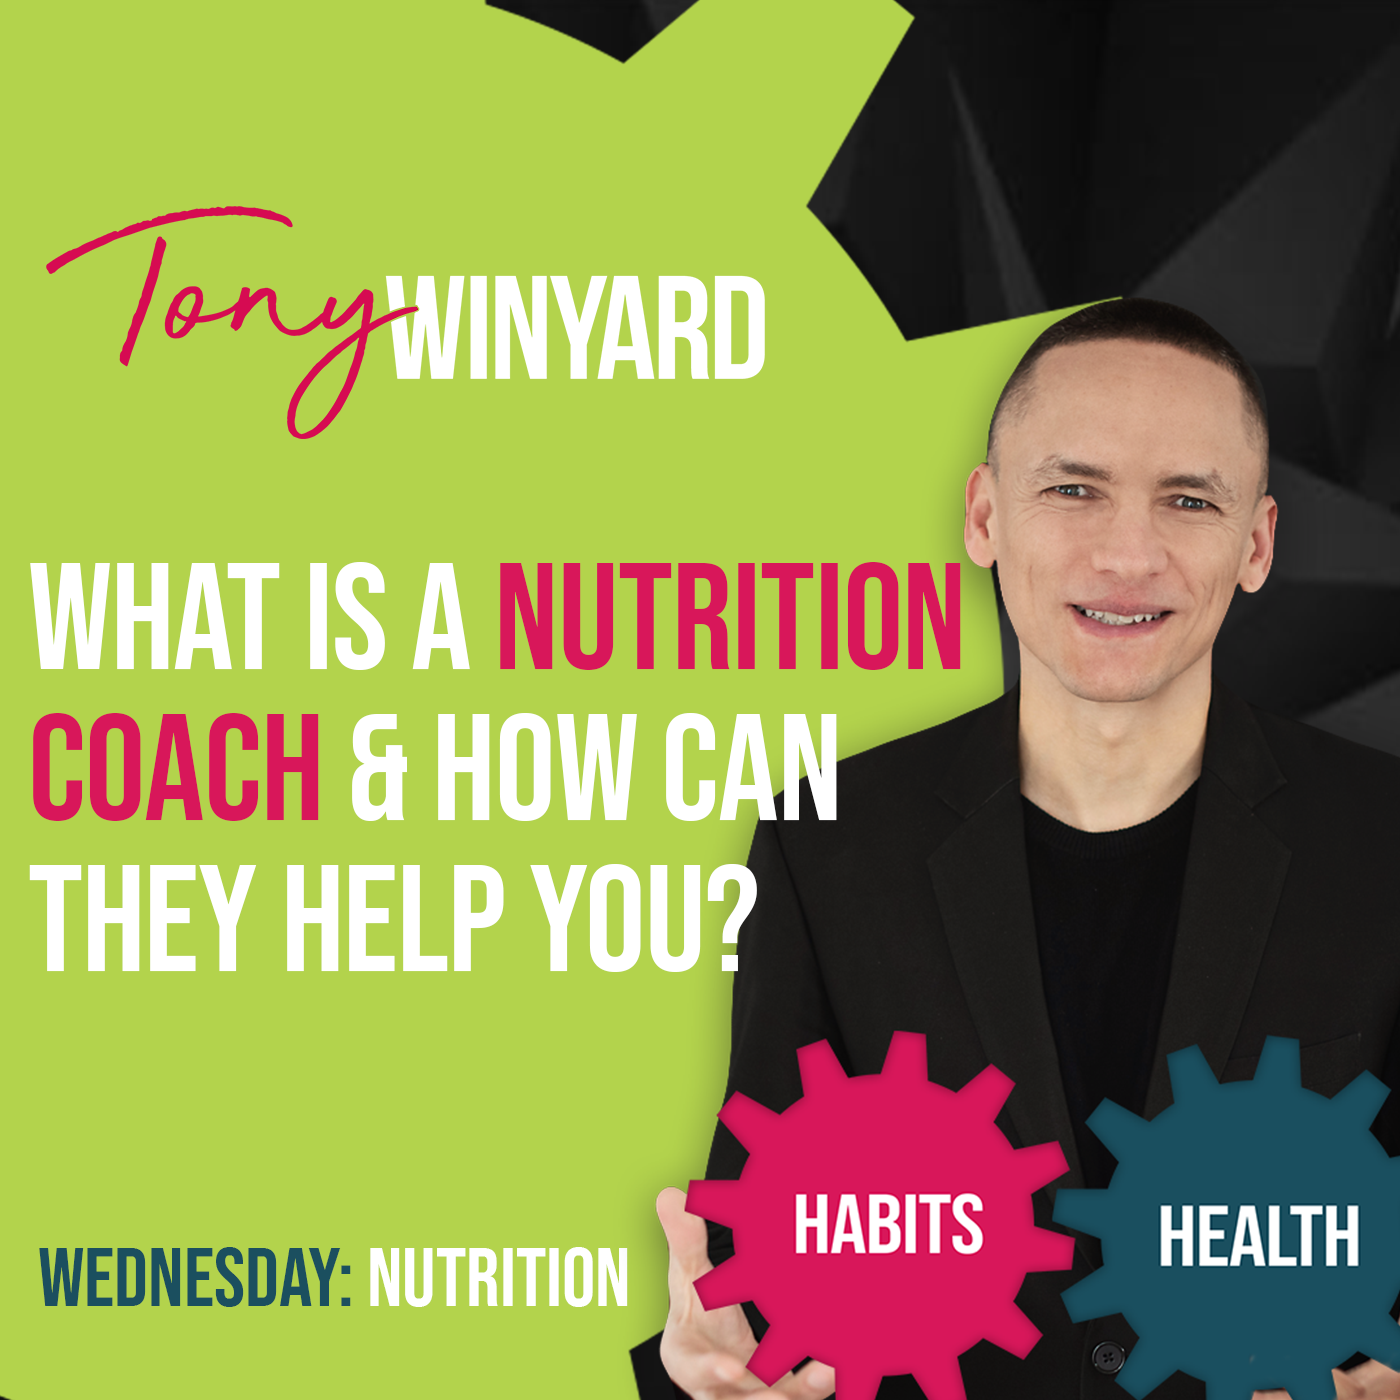 What Is A Nutrition Coach & How Can They Help You?